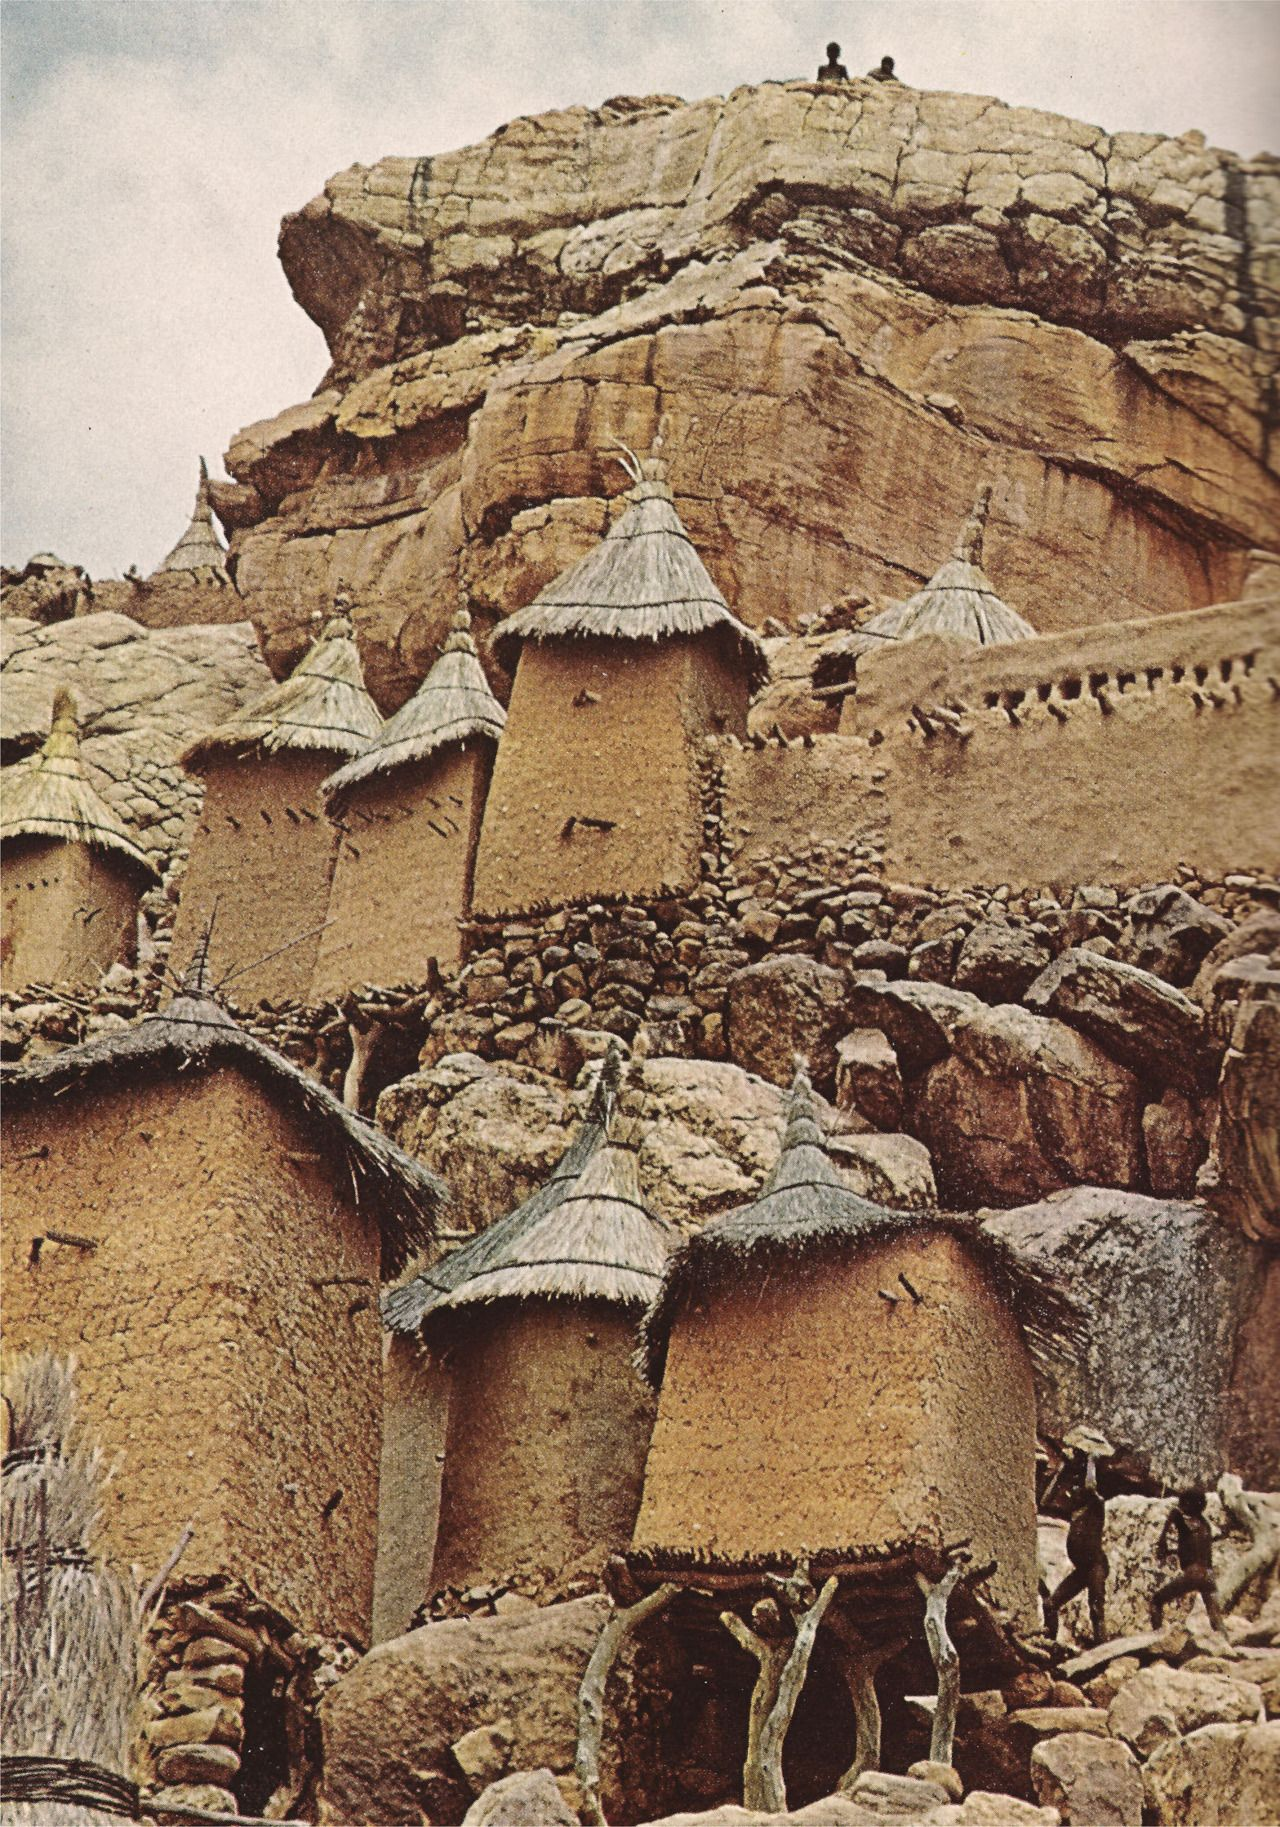 """""""Propped by rubble, logs, and faith, a family compound at Yenndouma, Mali, clings to a rock face."""" (National Geographic, 1969)"""